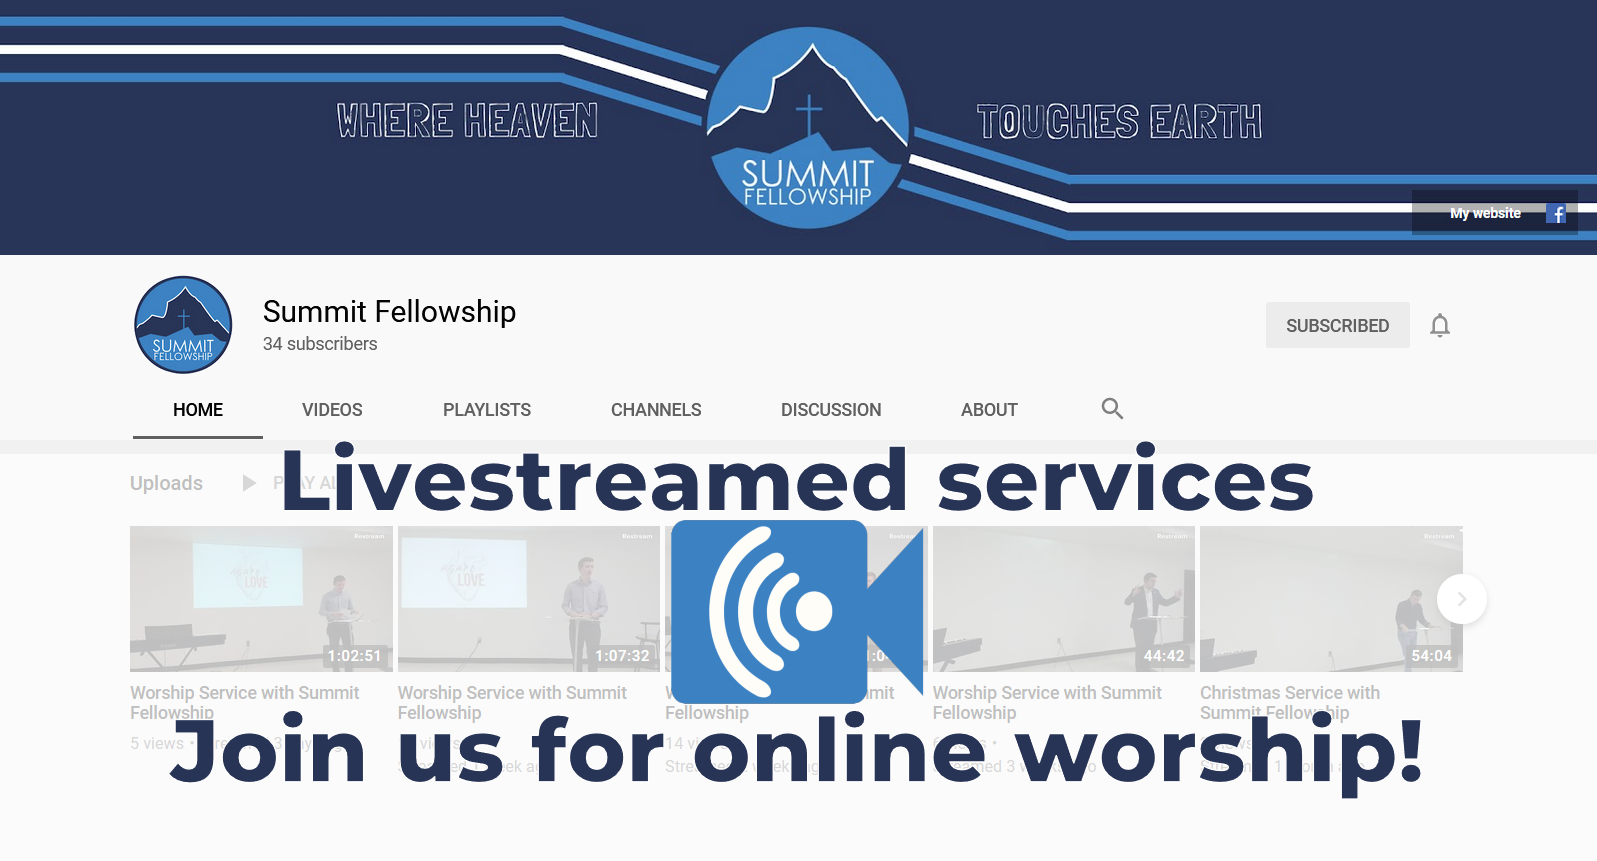 Livestreamed worship services